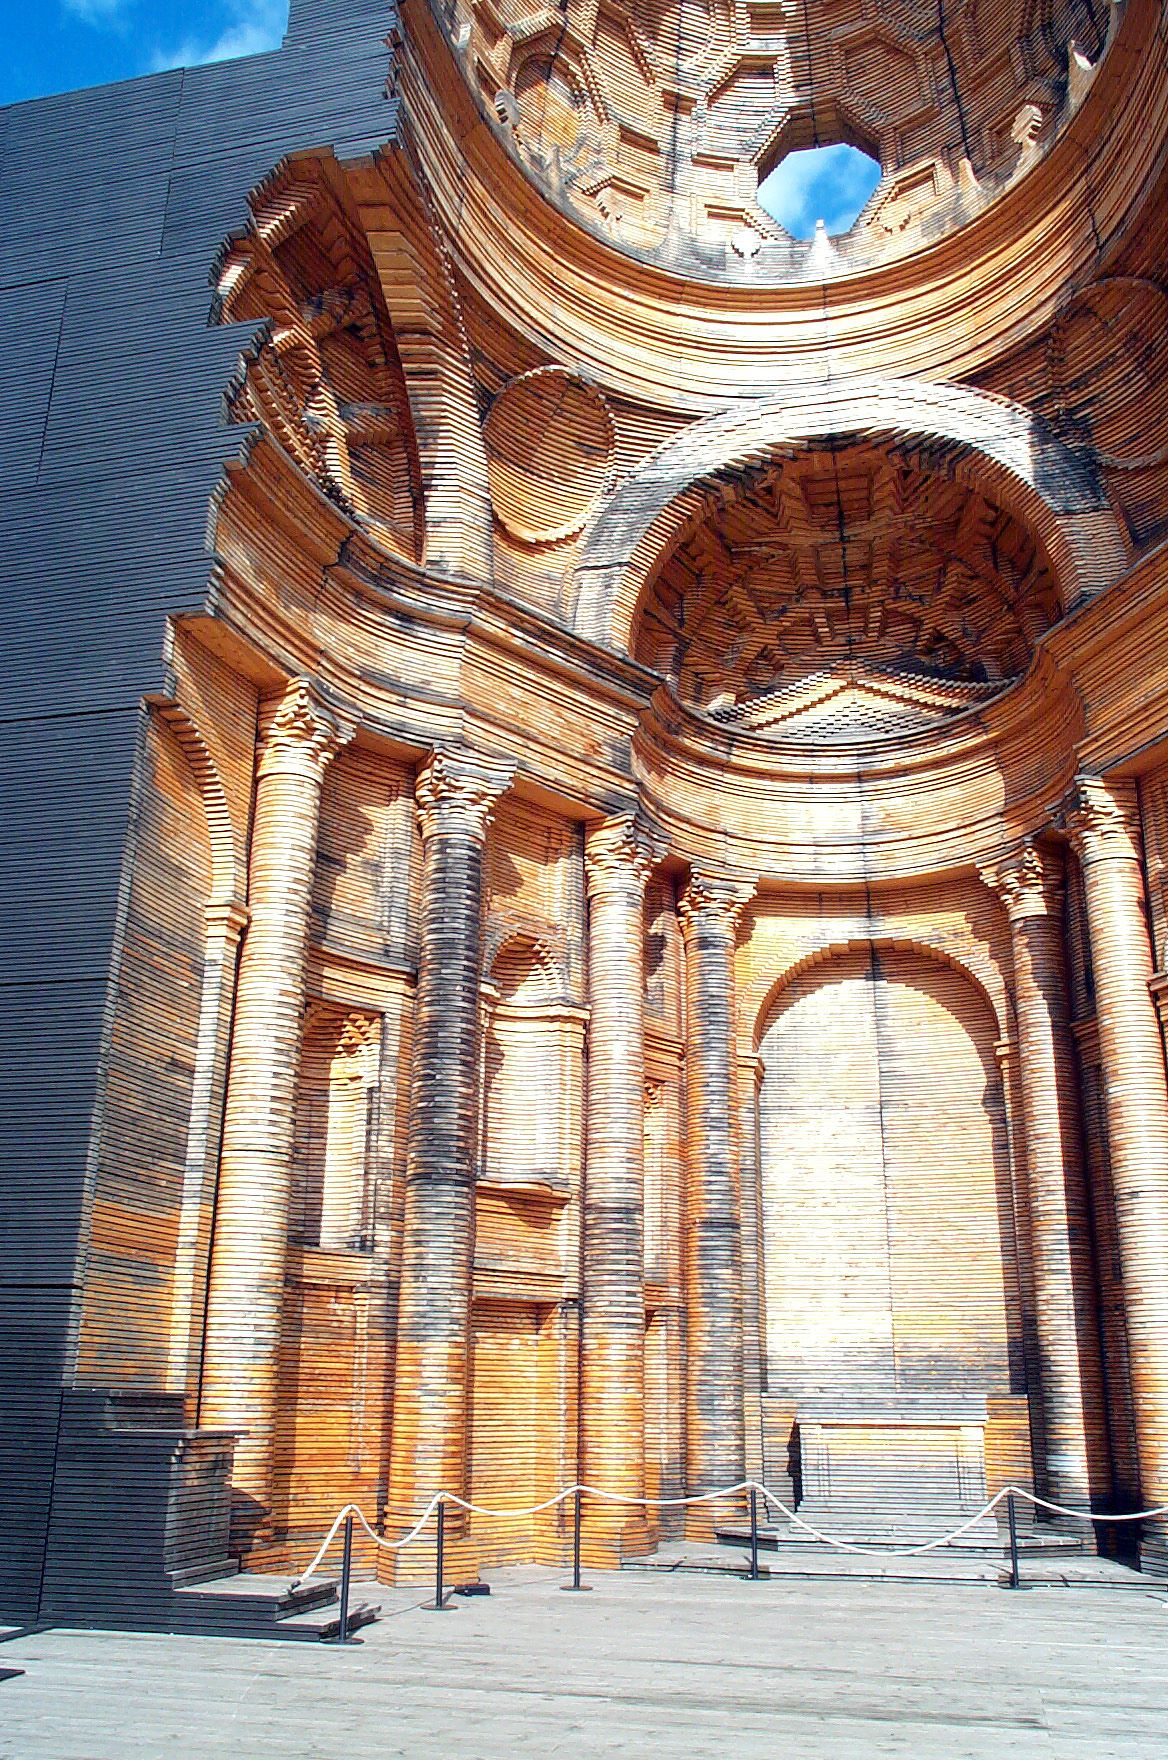 Jld Agence D'architecture D'intérieur Internationale Wooden Model Of Borromini S Church O F San Carlo Alle Quattro